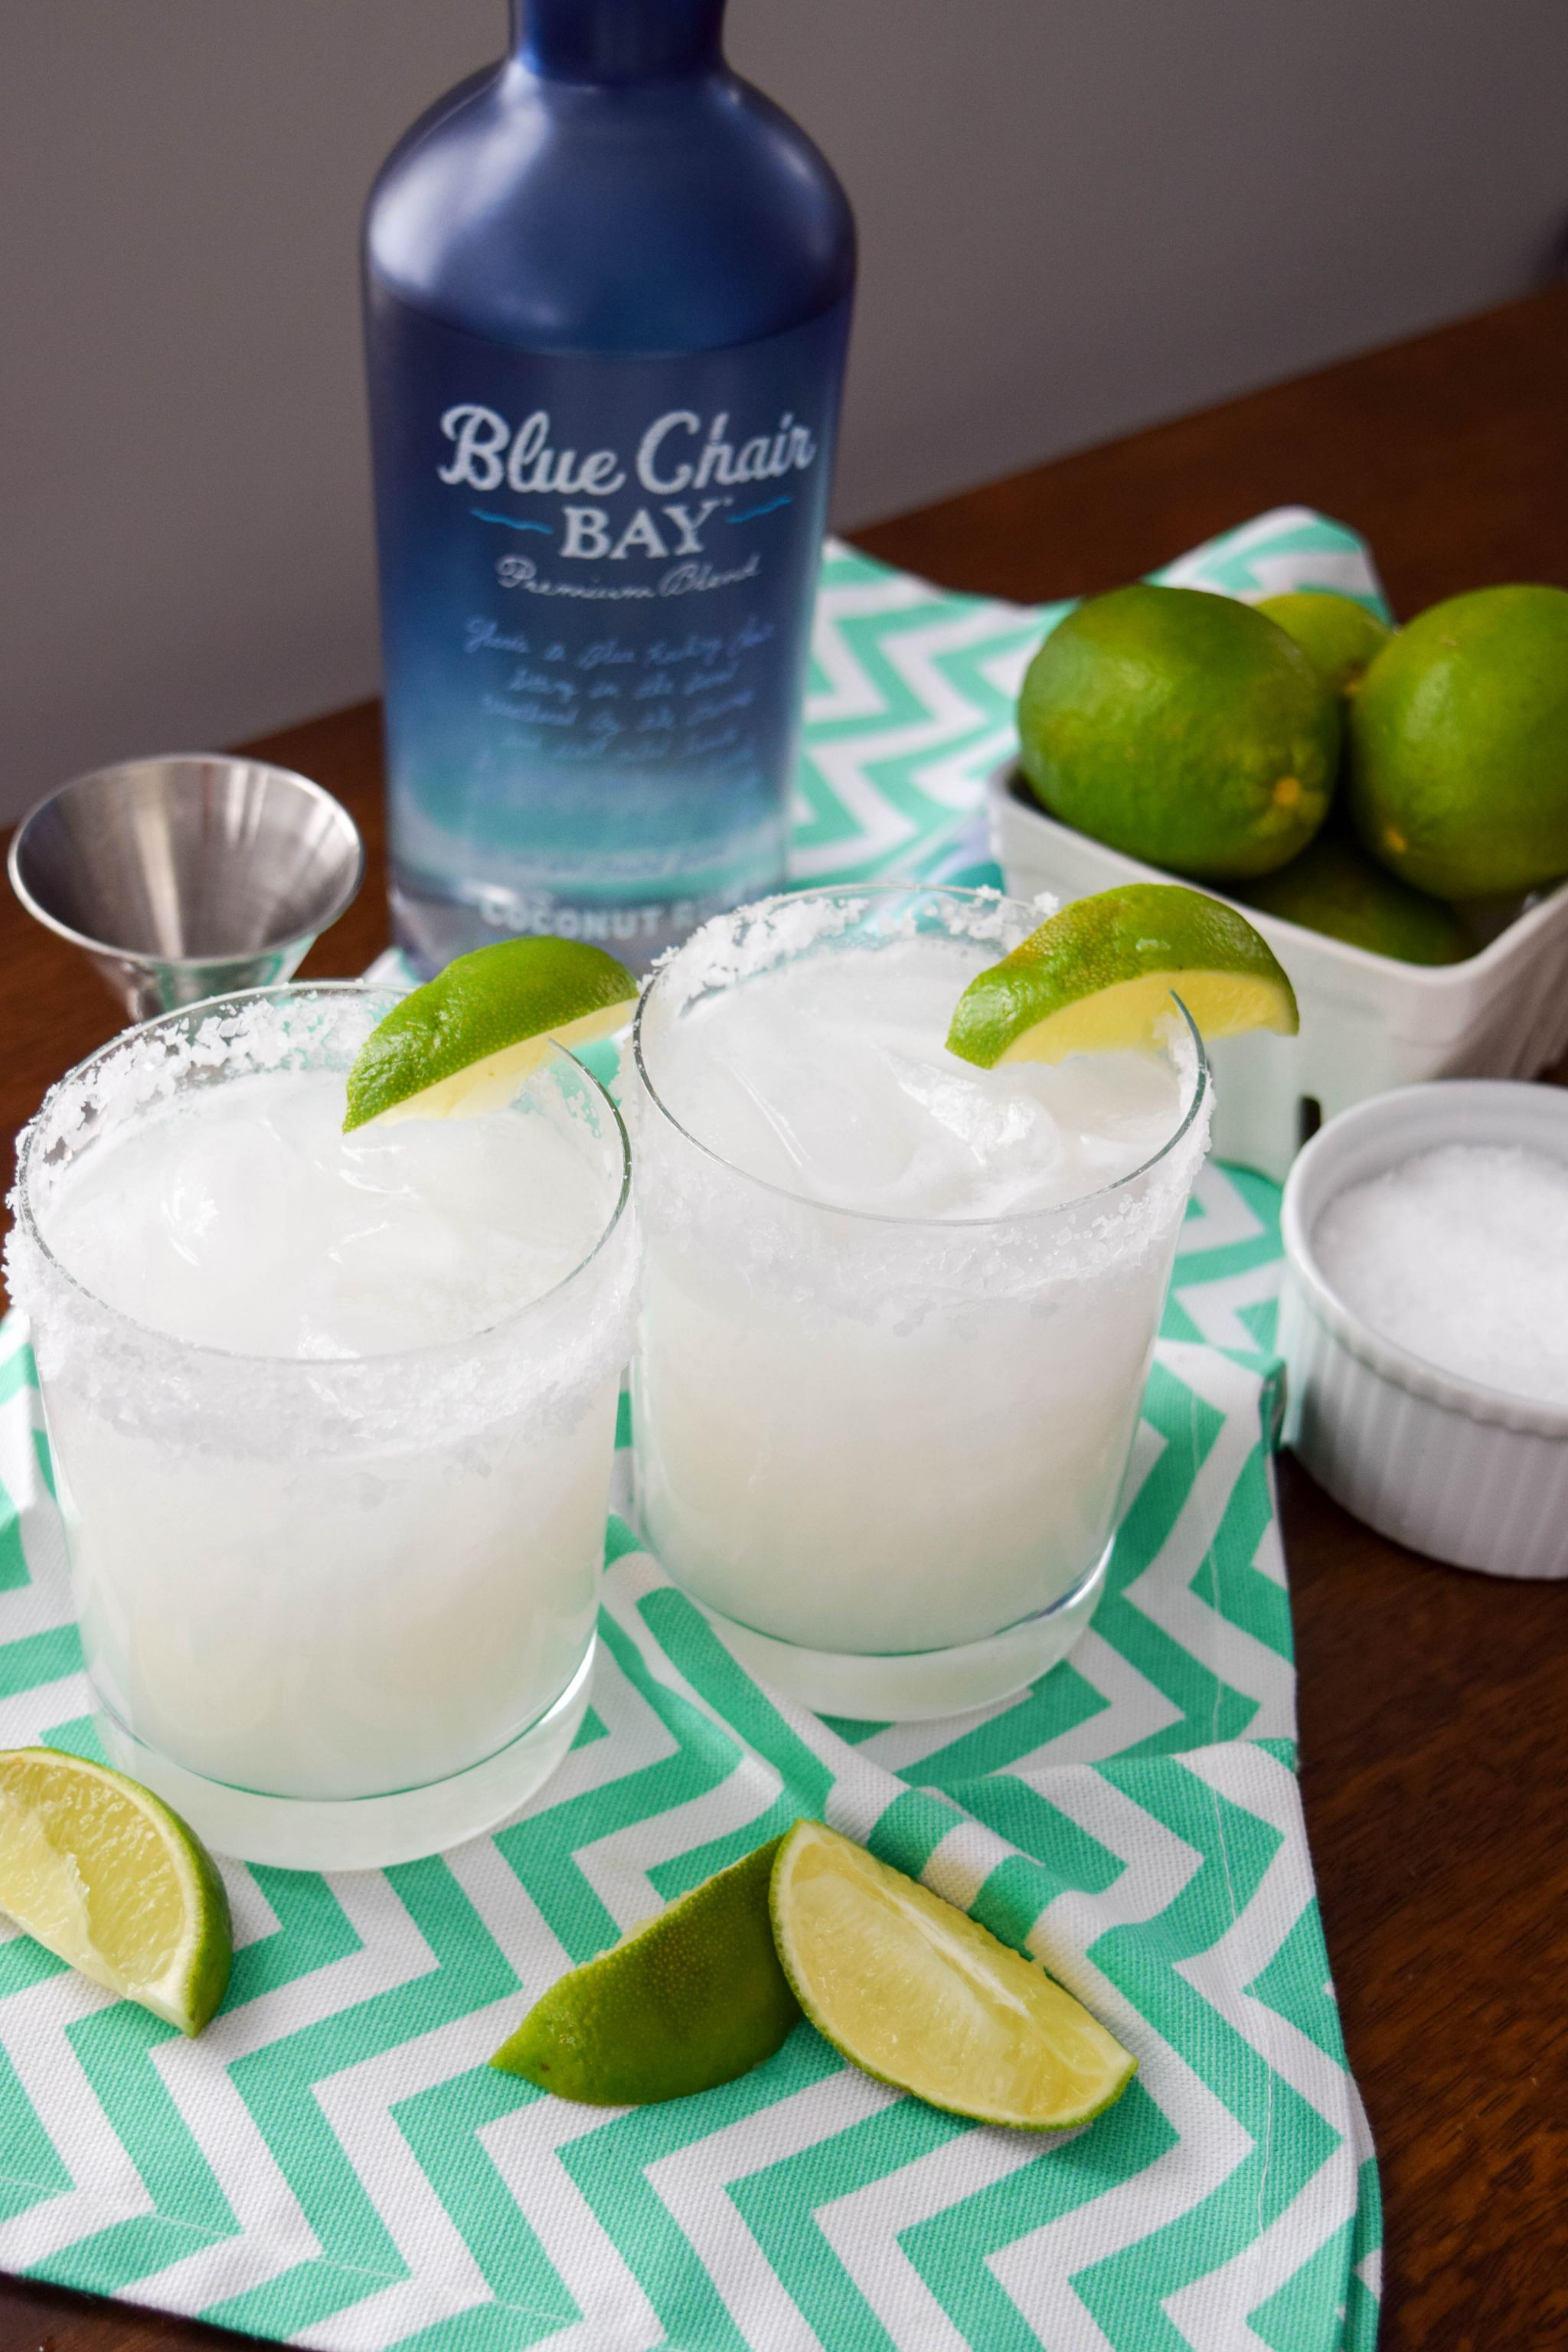 Blue Chair Bay Coconut Rum Coconut Rum Margaritas Boston Chic Party